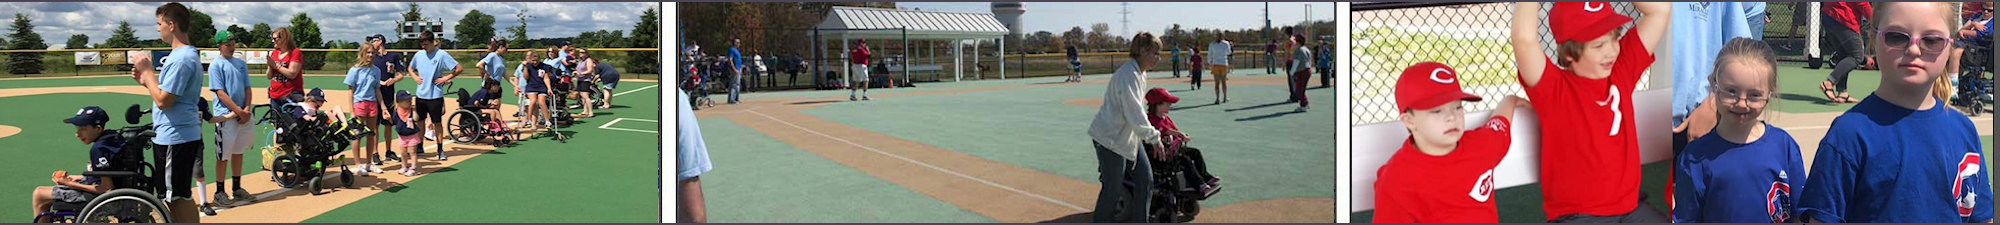 The Miracle League Header Image